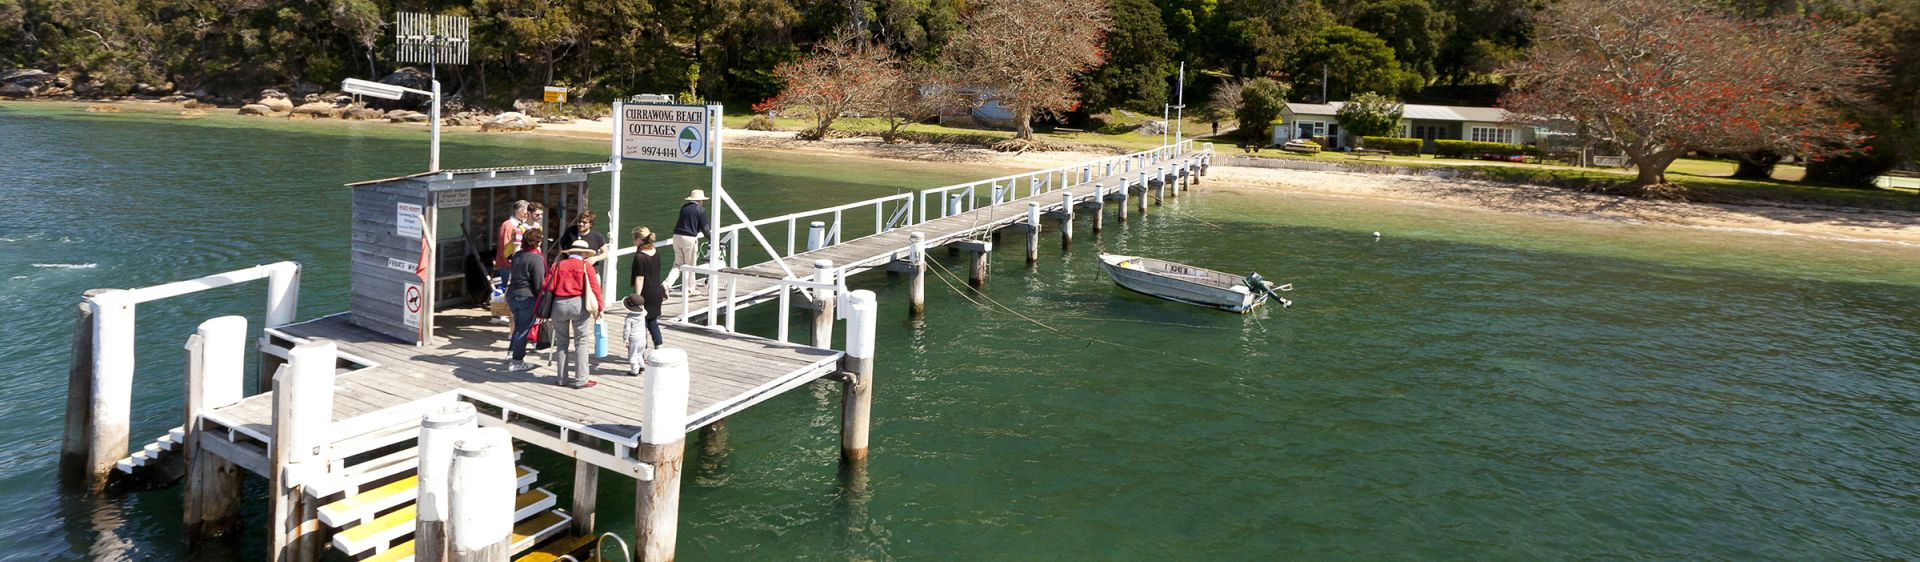 Currawong Beach Cottages - Ku-Ring-Gai Chase National Park